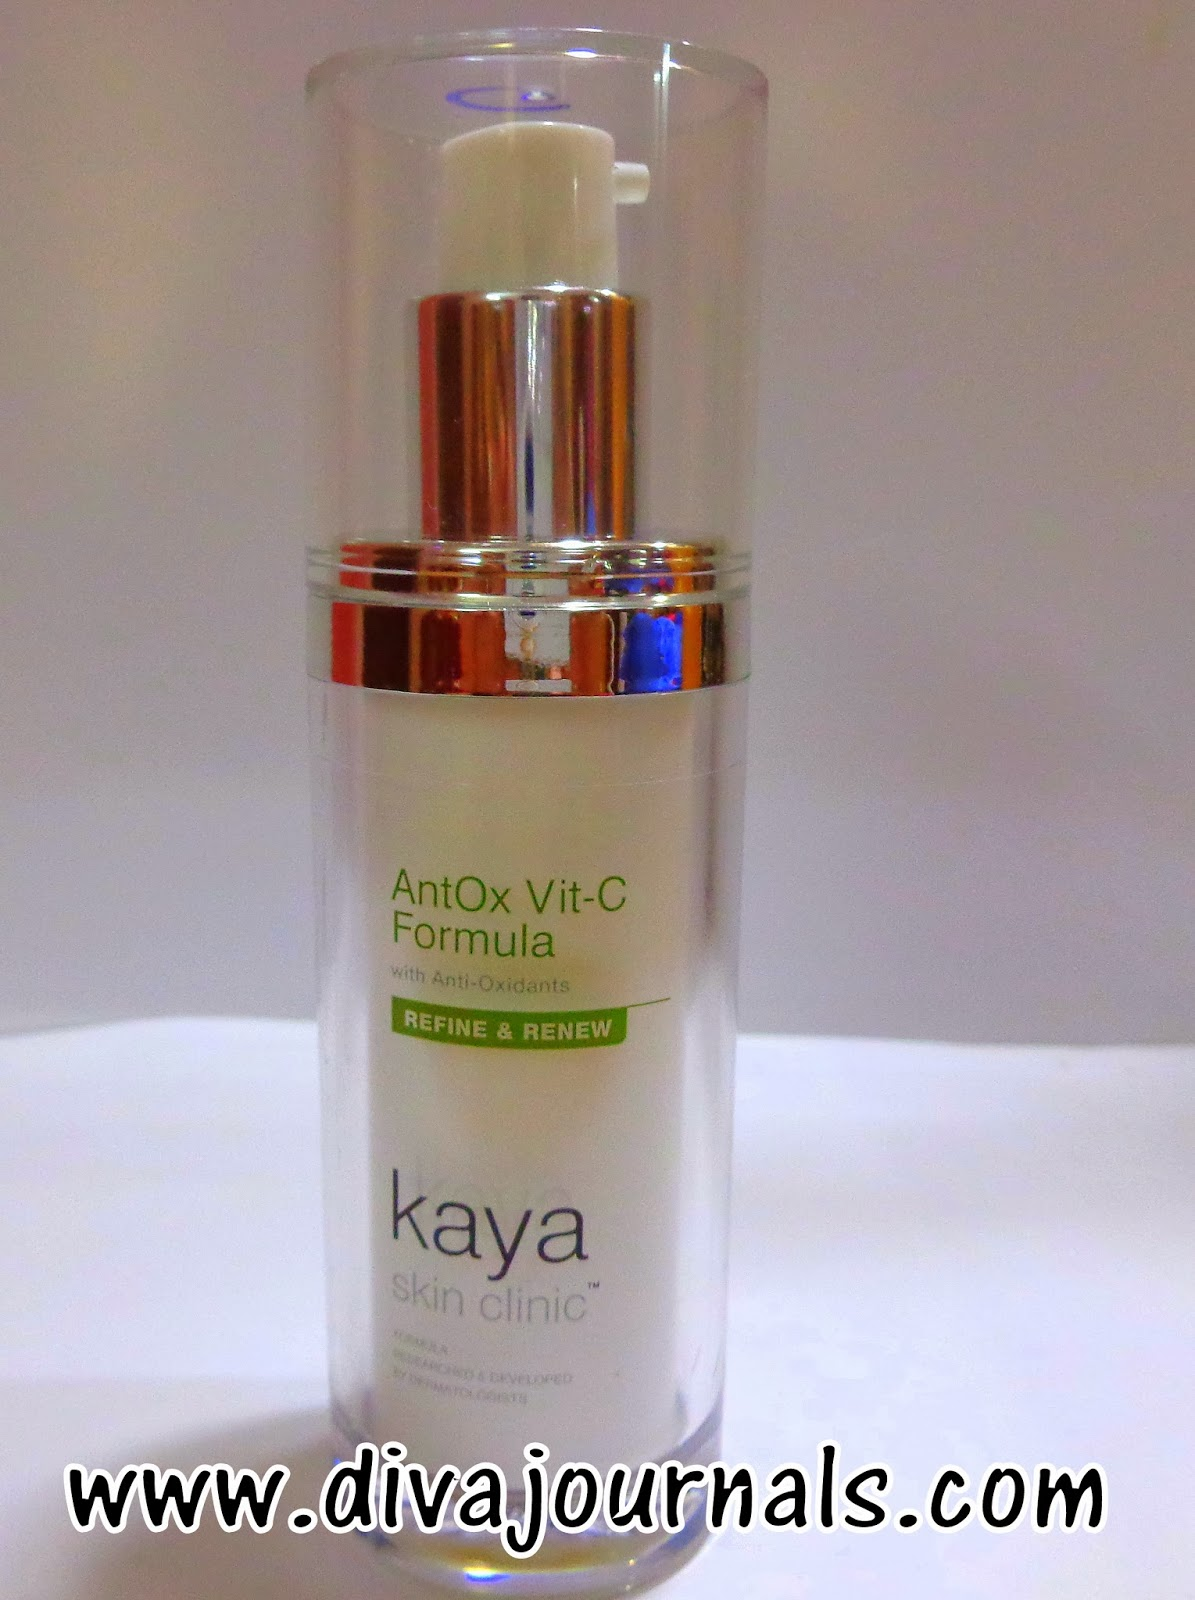 Kaya Antox Vitamin C Formula Review